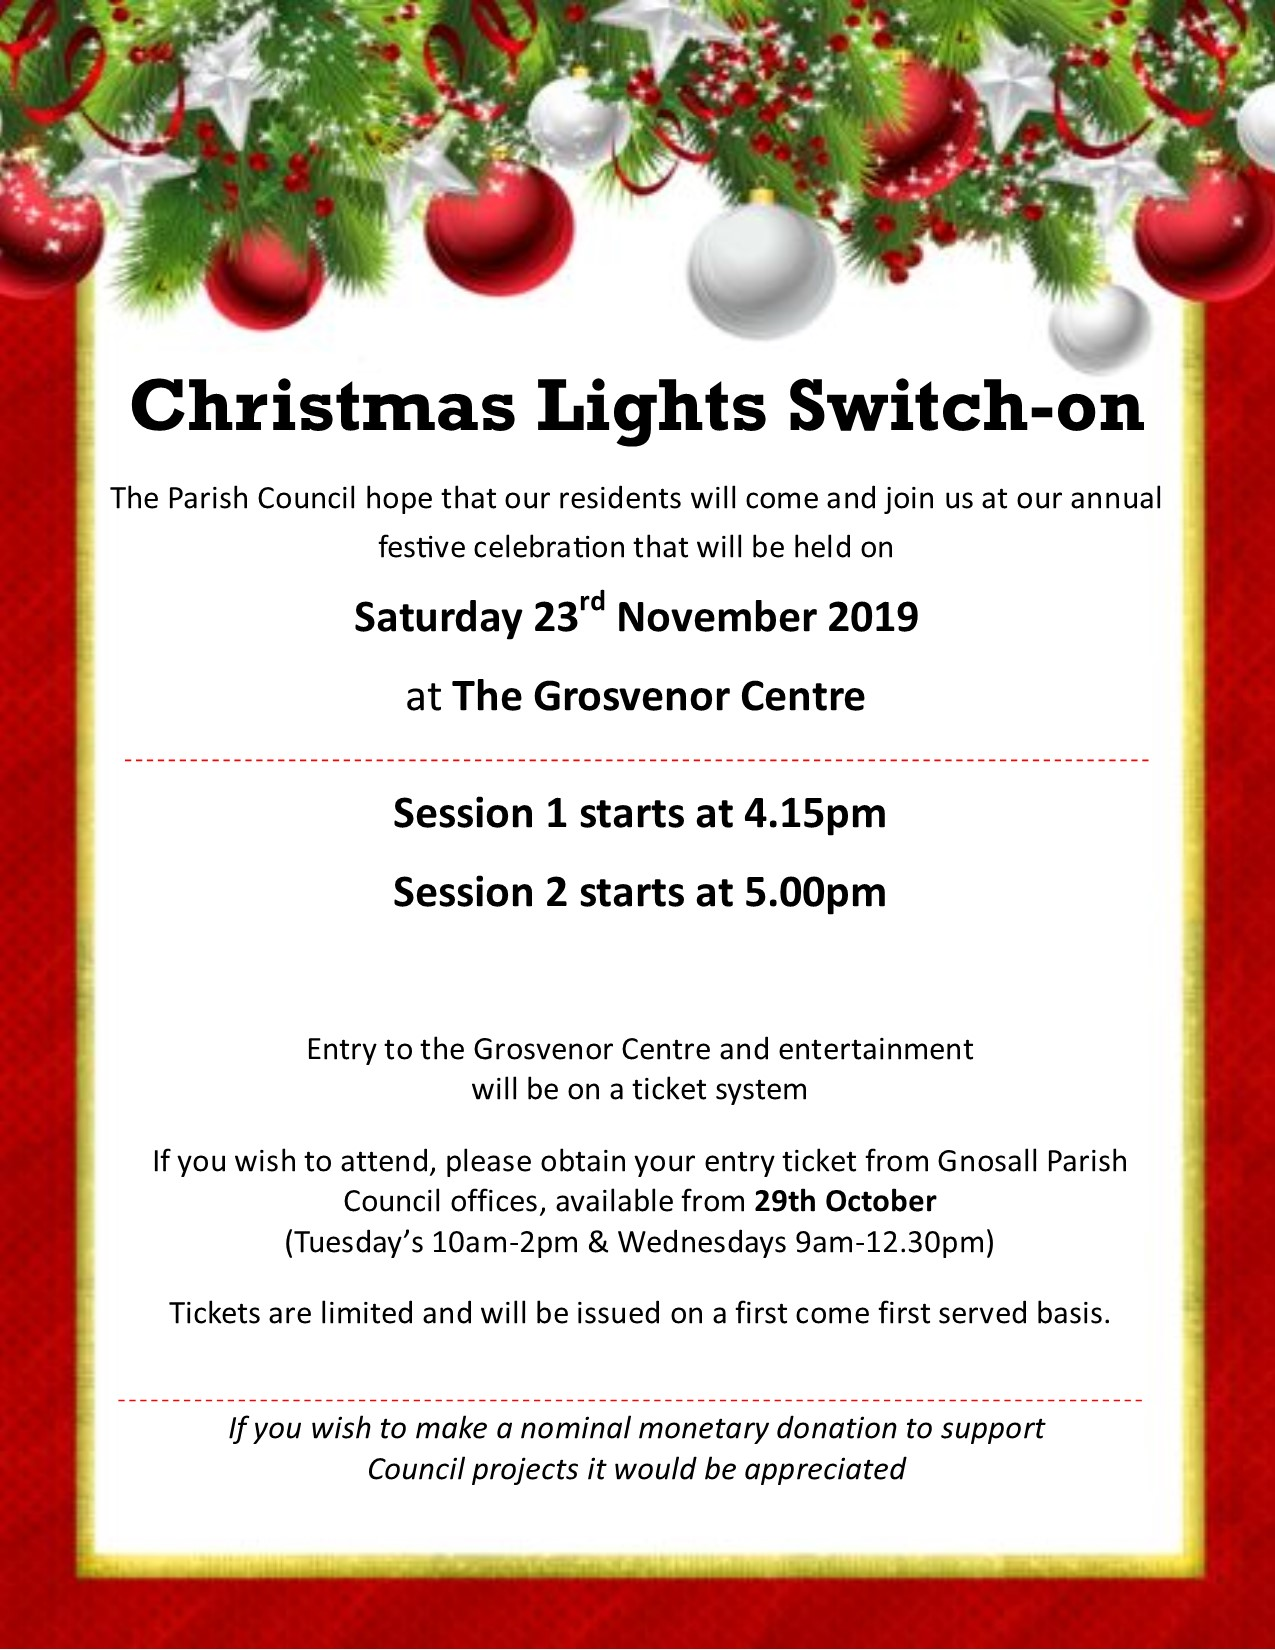 2019 Christmas lights switch on programme.jpg